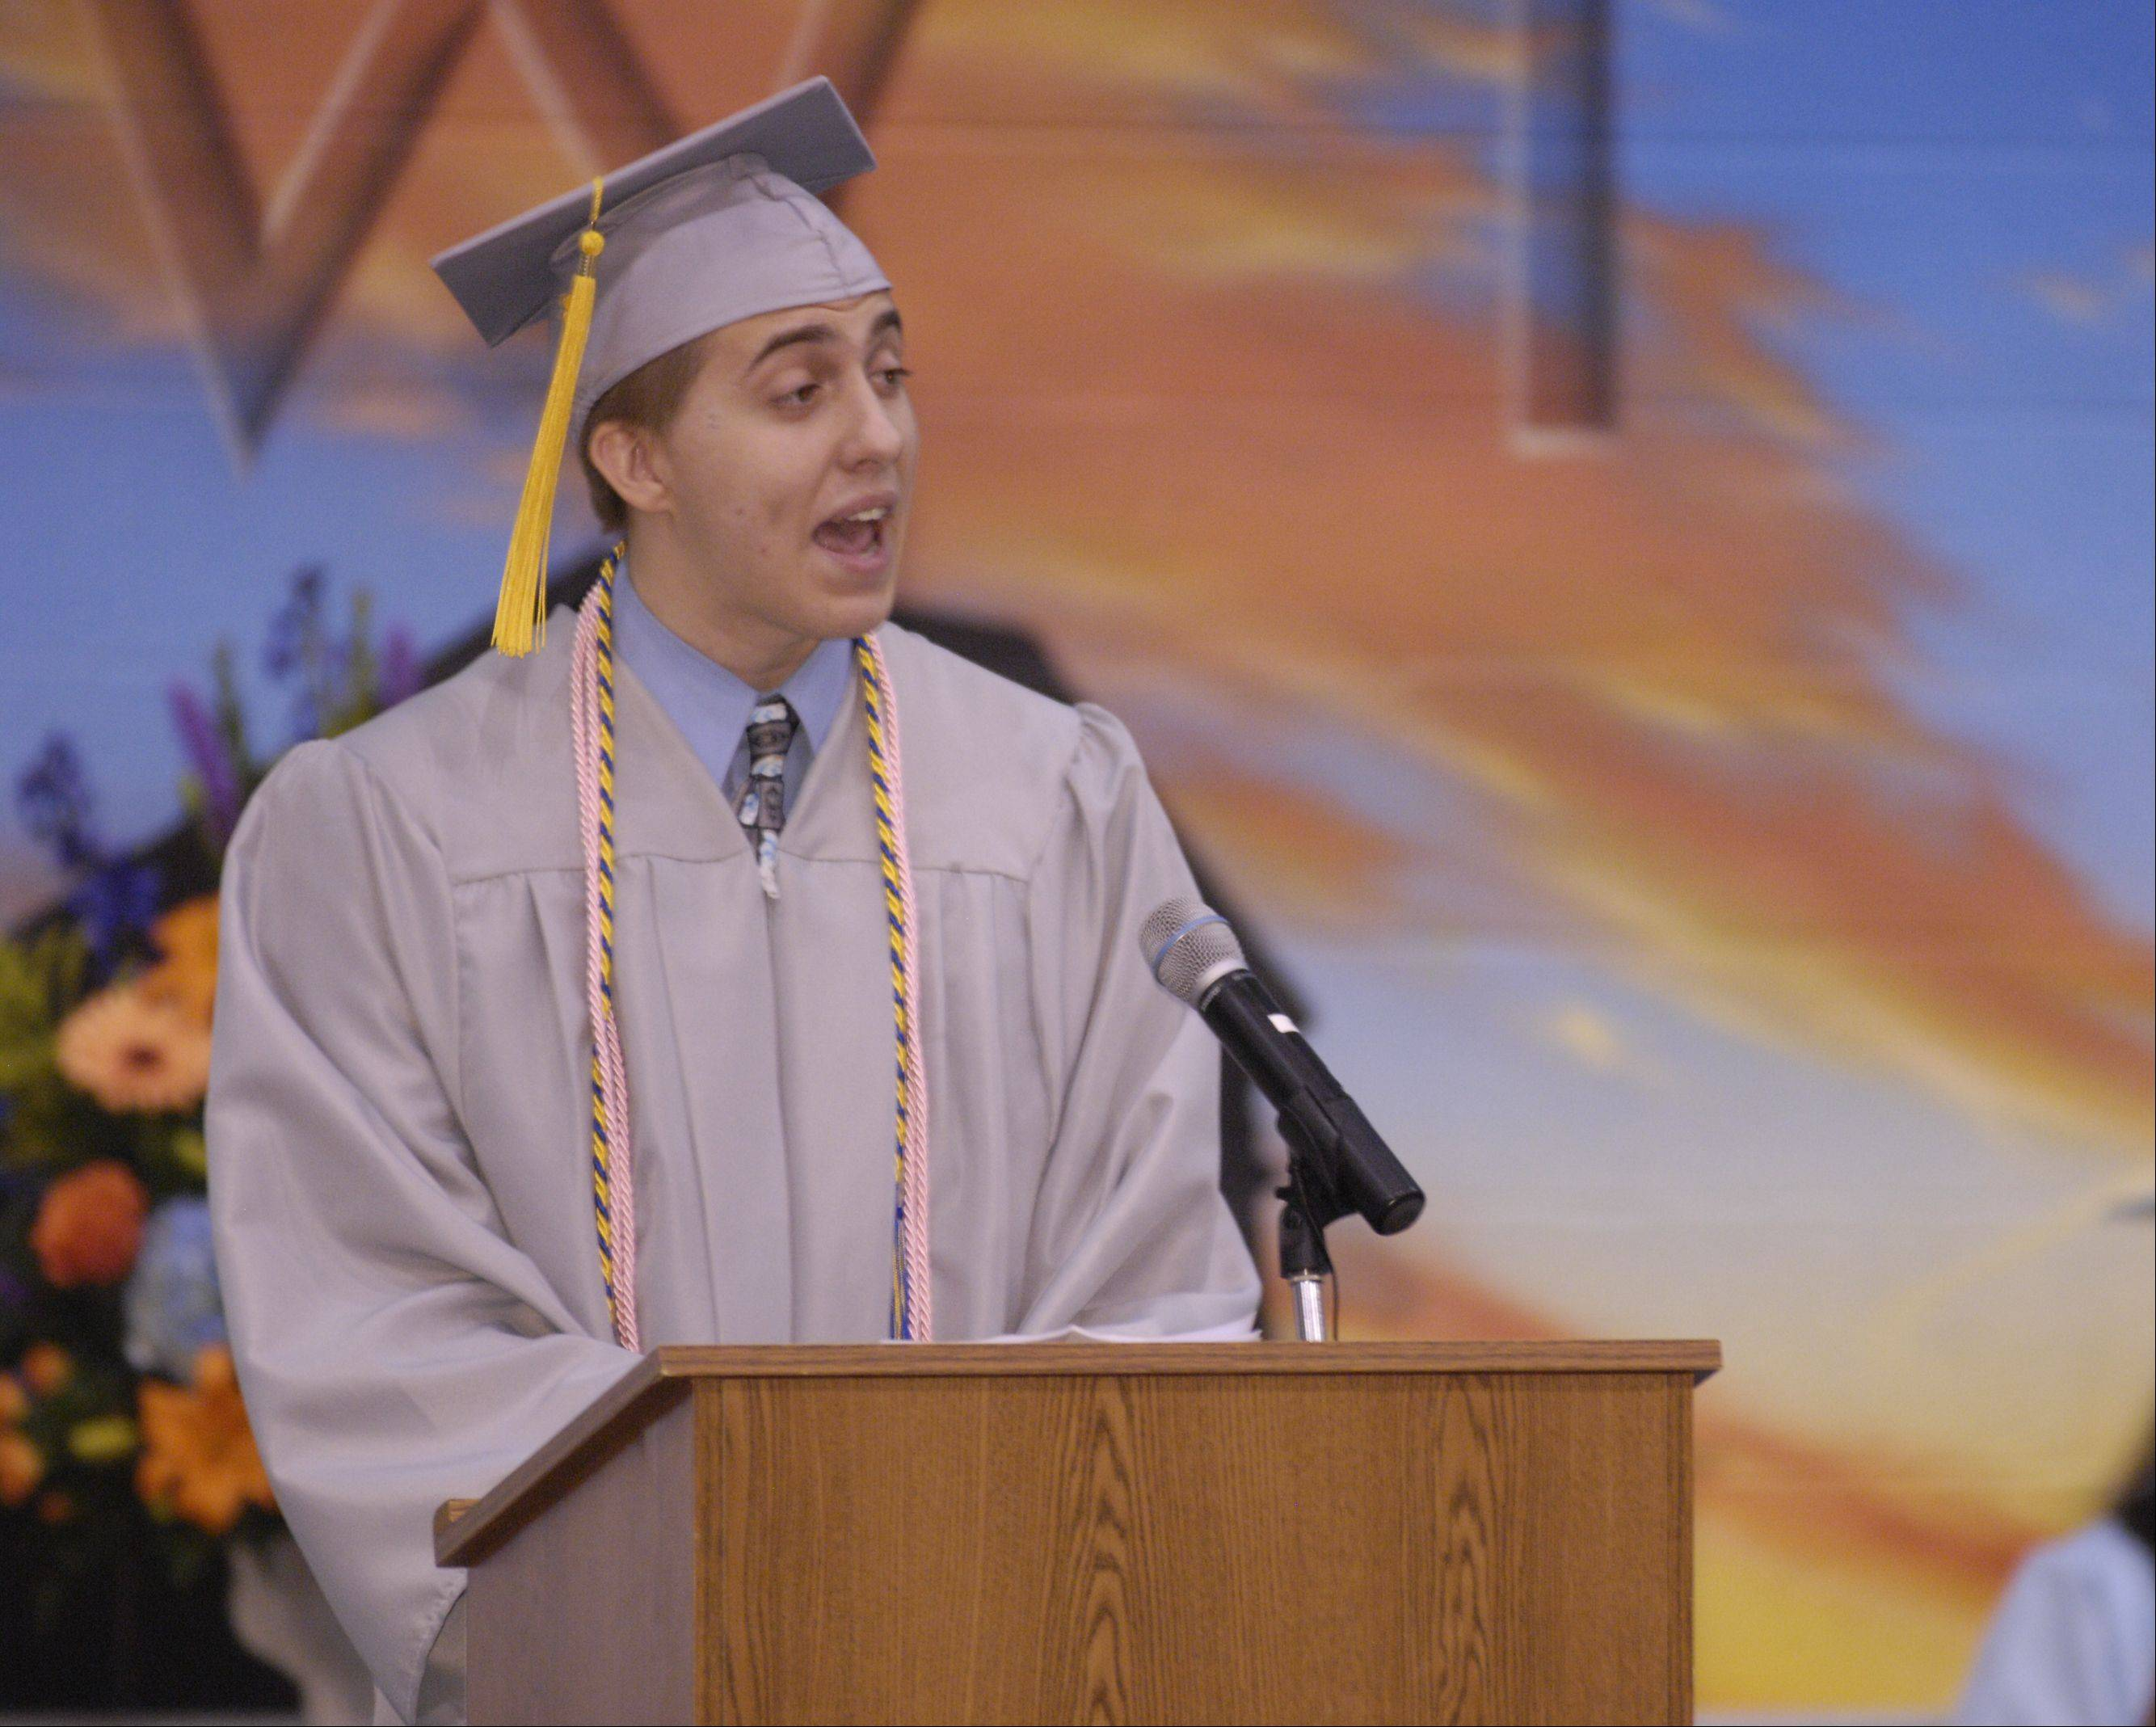 Co-President, Class of 2013 Nicholas Baumann speaks during the Willowbrook High School graduation on Sunday, June 9 at the school.